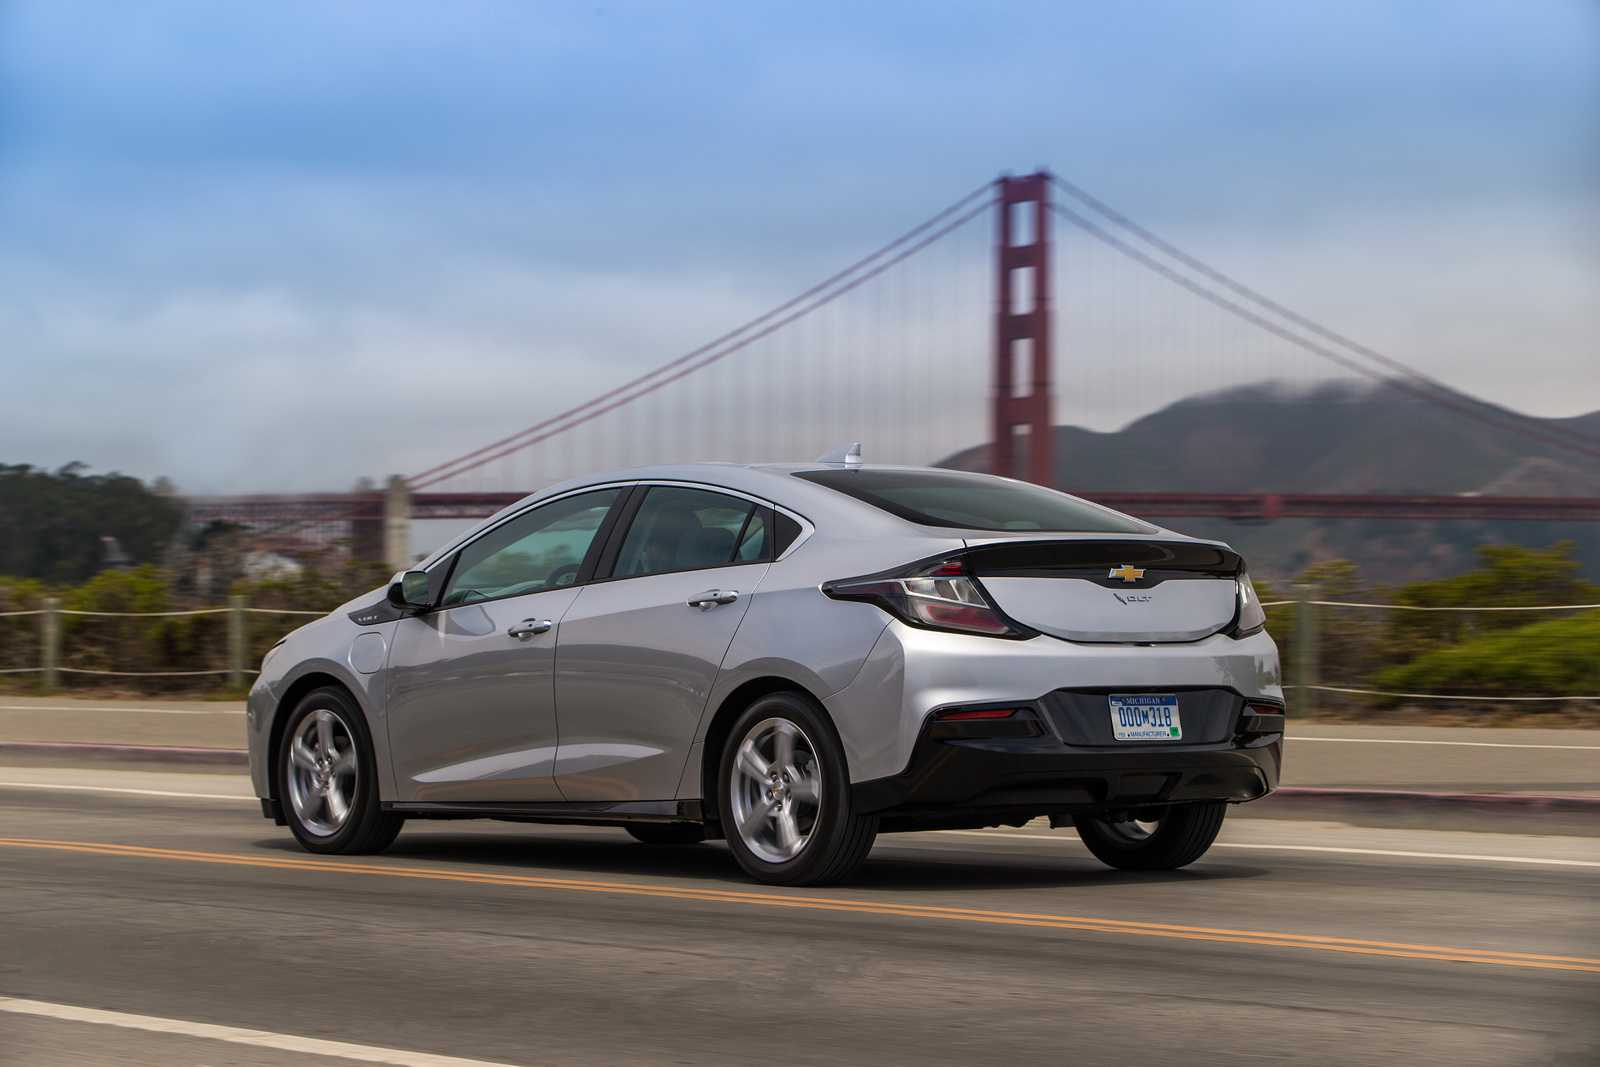 2016 Chevrolet Volt – New Photos Show the Plug-In Hybrid in its Full Glory